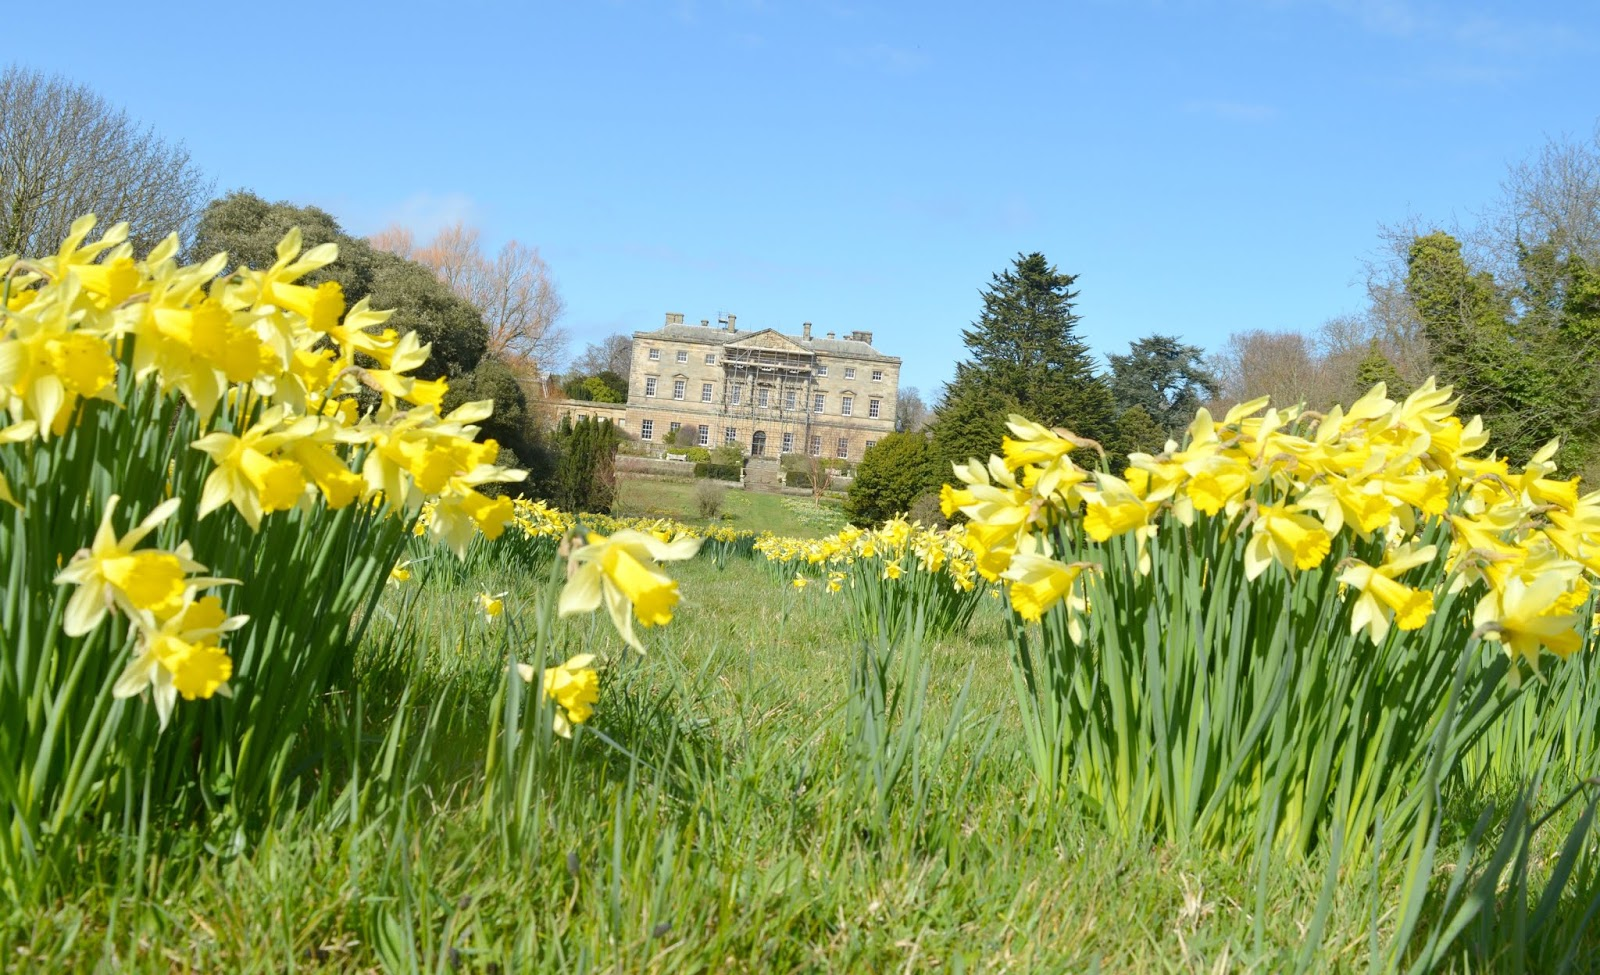 Howick Hall, Northumberland - The Daffodils